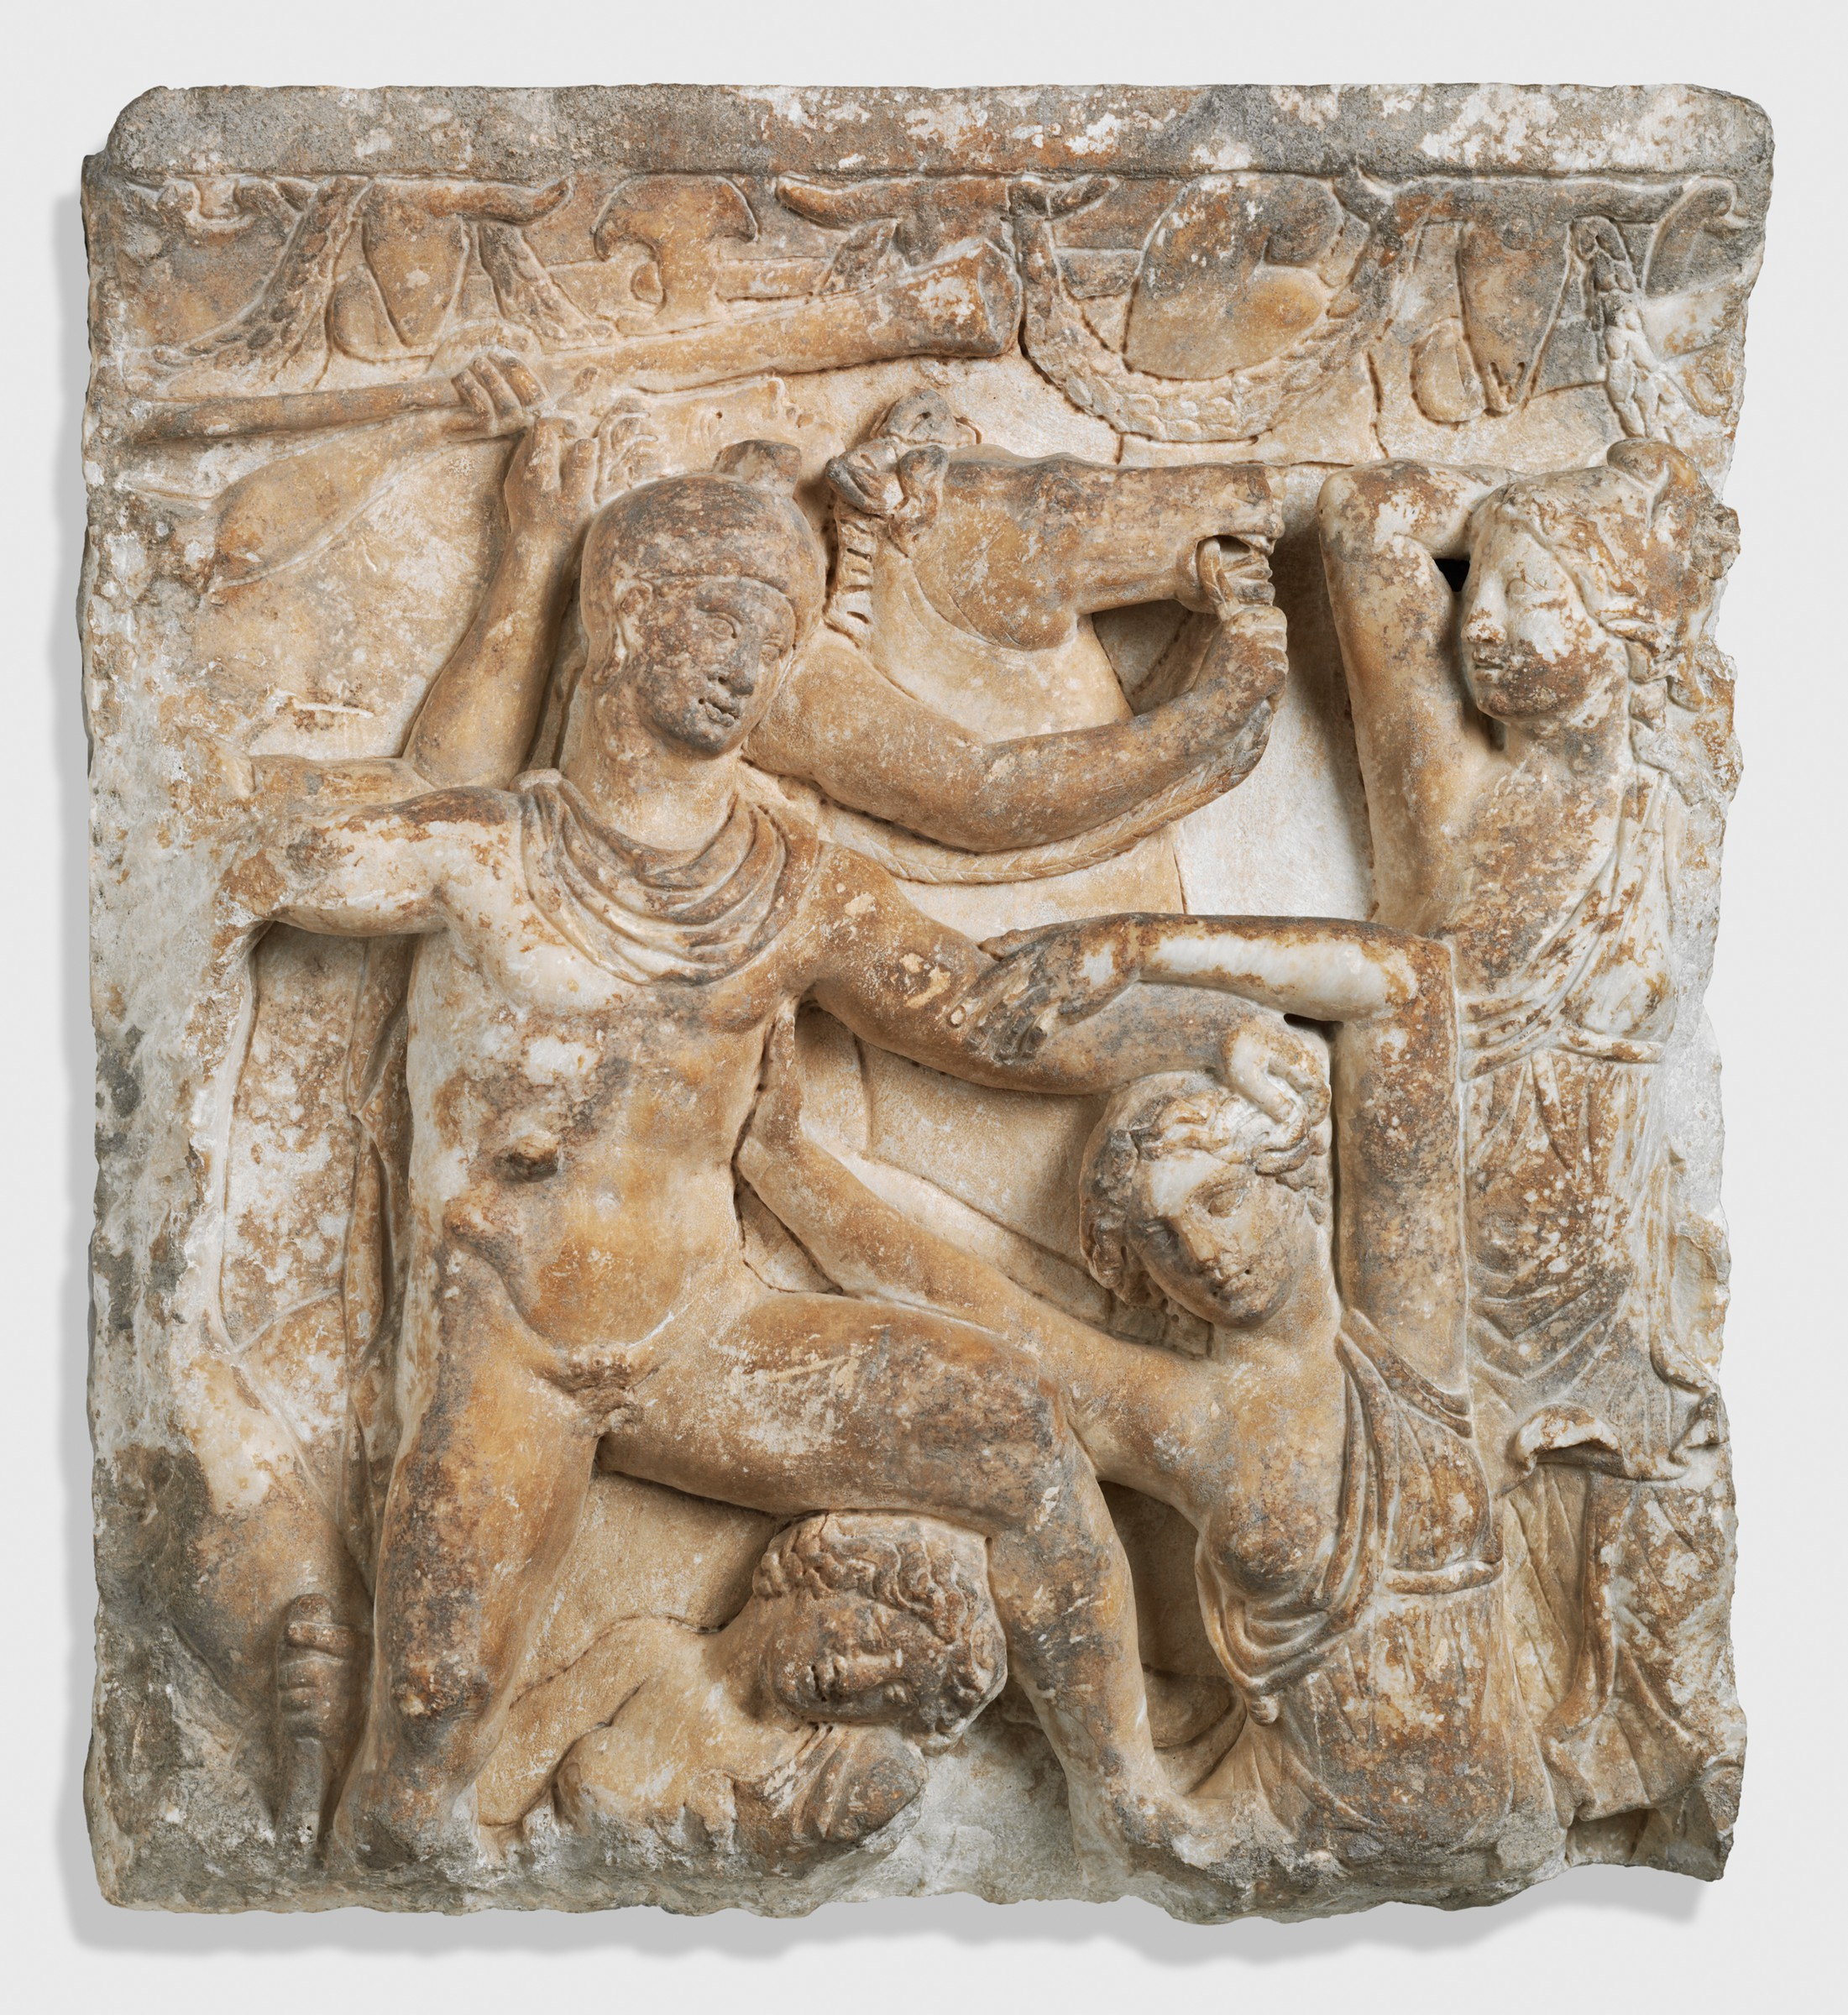 Photograph of a portion of a carved marble sarcophagus depicting Amazon women fighting men.